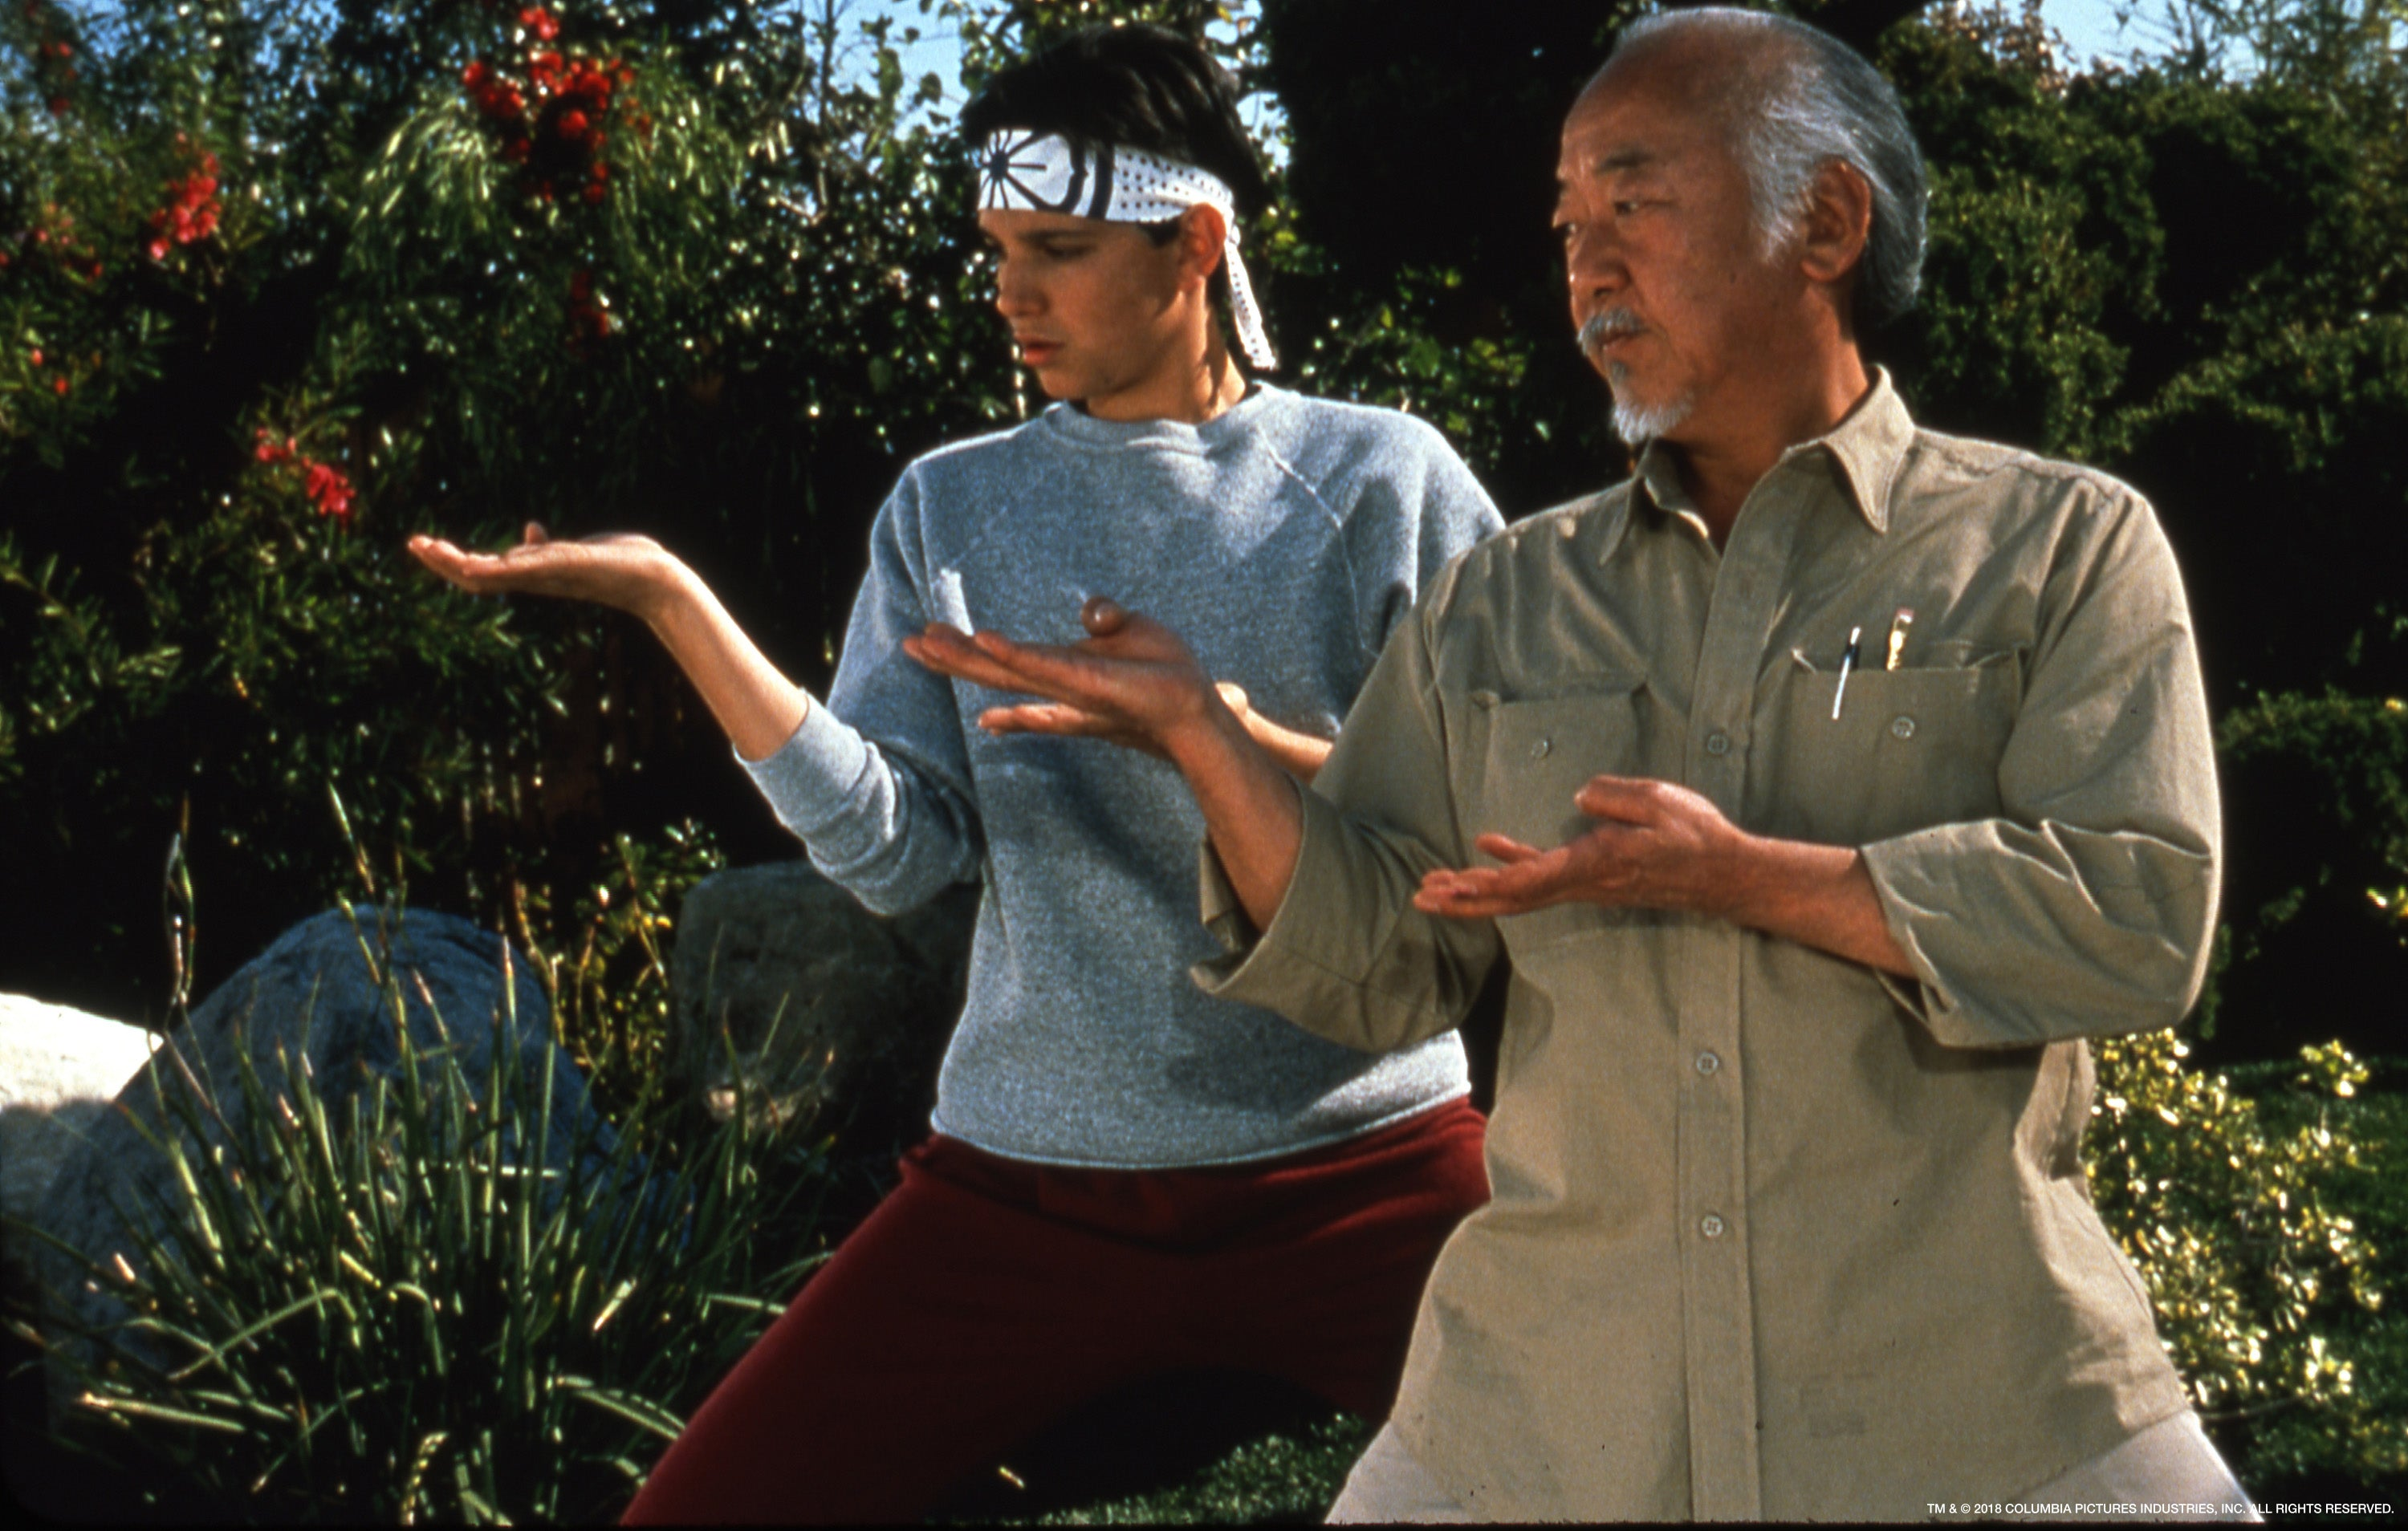 Why The Karate Kid is THE Quintessential '80s American Film